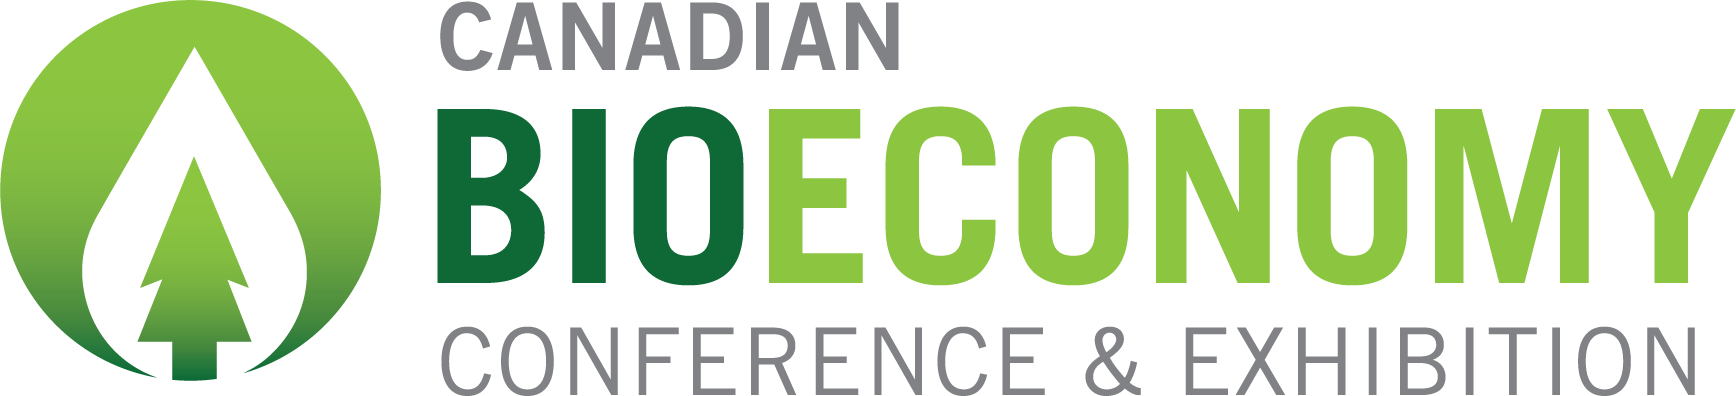 Canadian Bioeconomy Conference & Exhibition